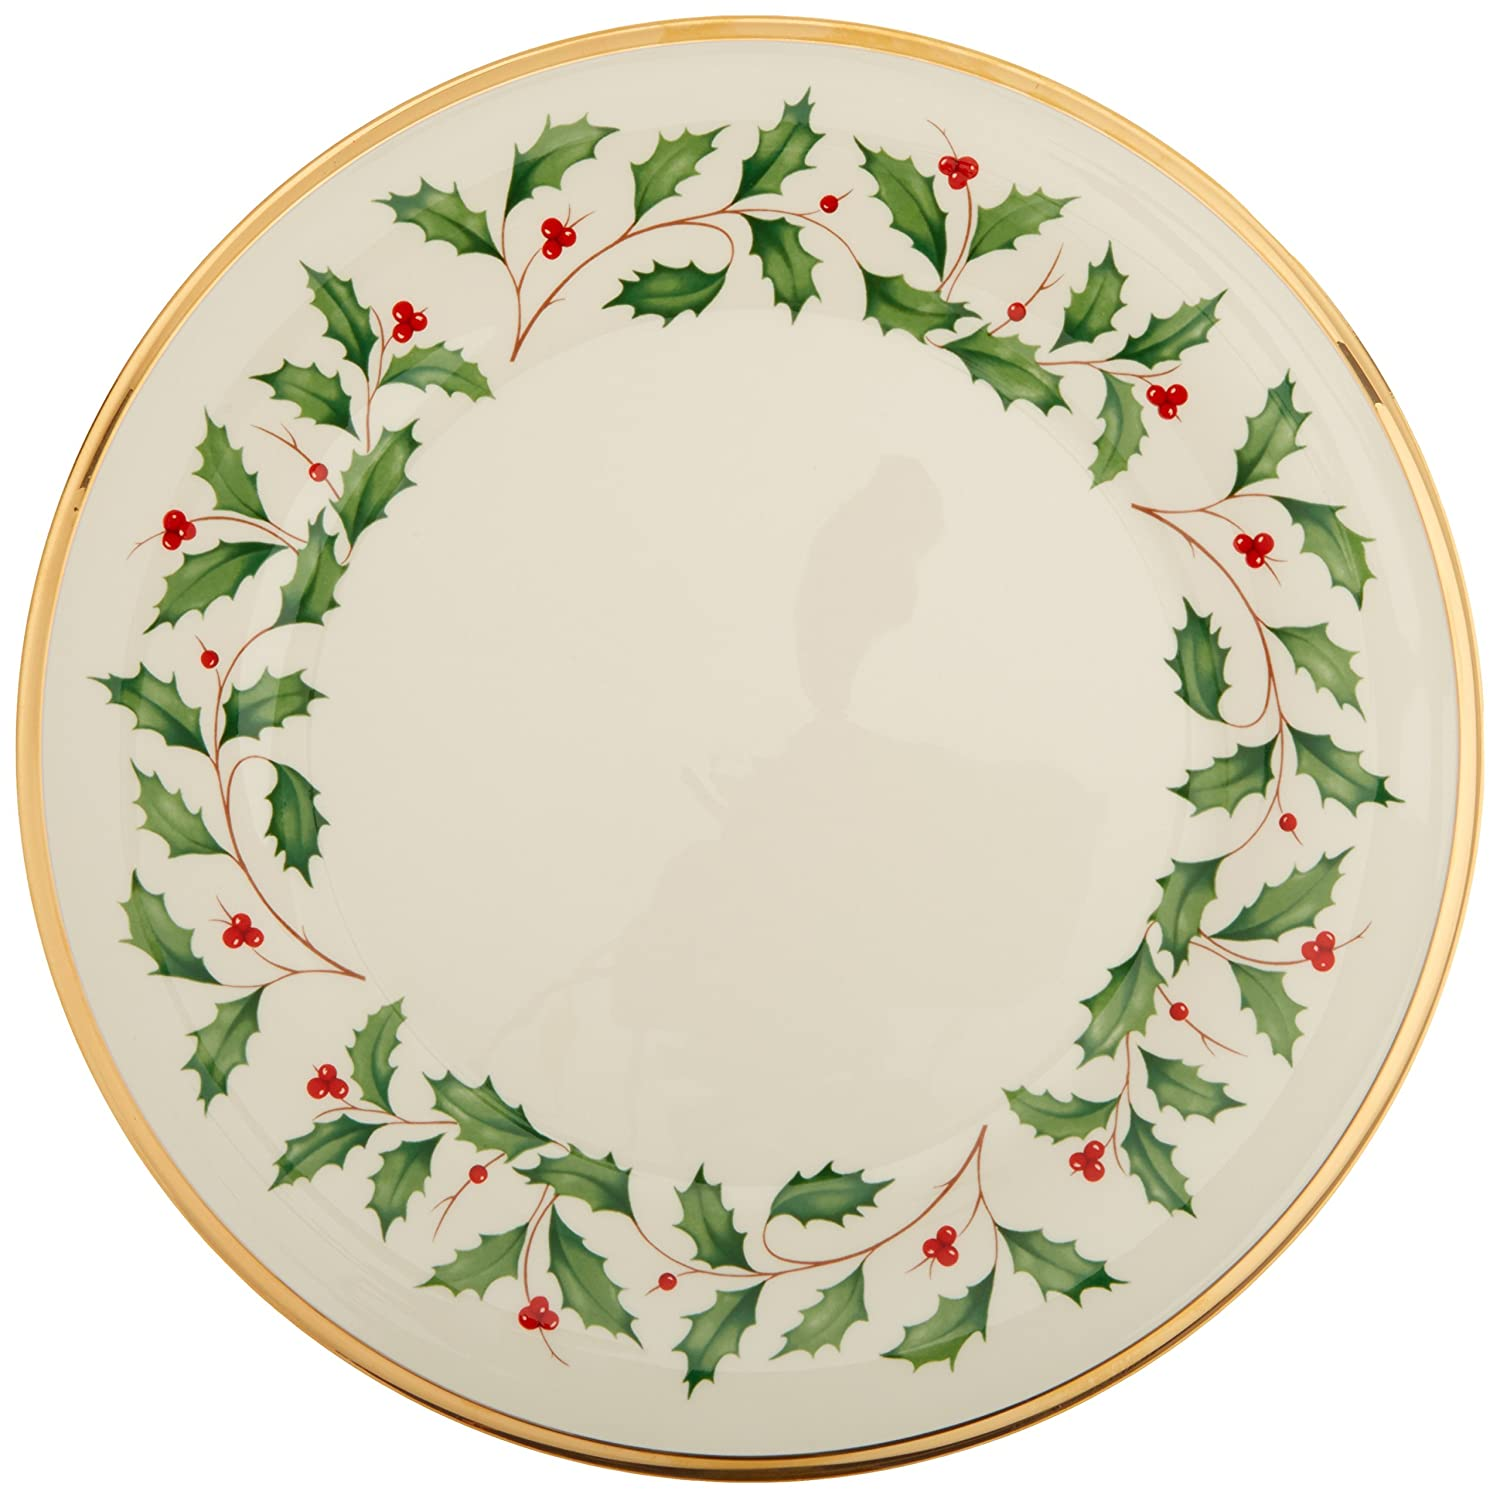 sc 1 st  Amazon.com & Amazon.com: Lenox Holiday 12-Piece Dinnerware Set: Kitchen u0026 Dining